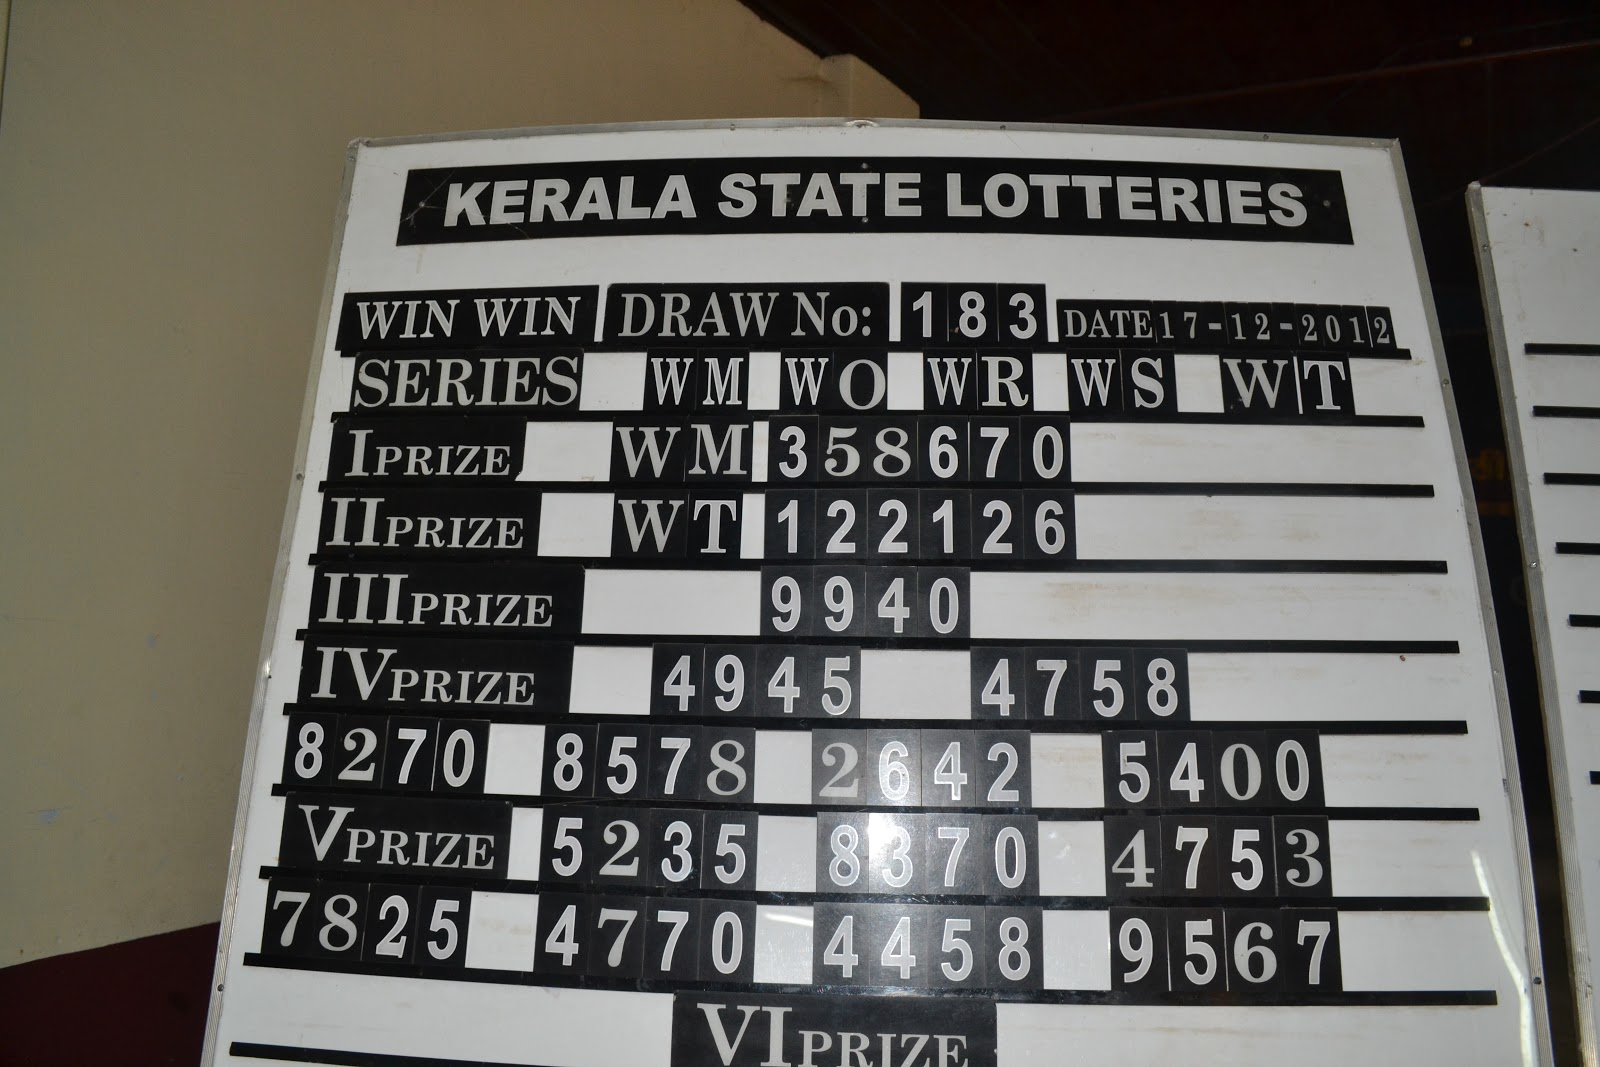 kerala state lotteries Kerala state lotteries - indian lottery the leading provider of india lottery games - kerala lotteries - was established on september 1st 1967 with the dual aims of raising funds to further develop the state of kerala and at.